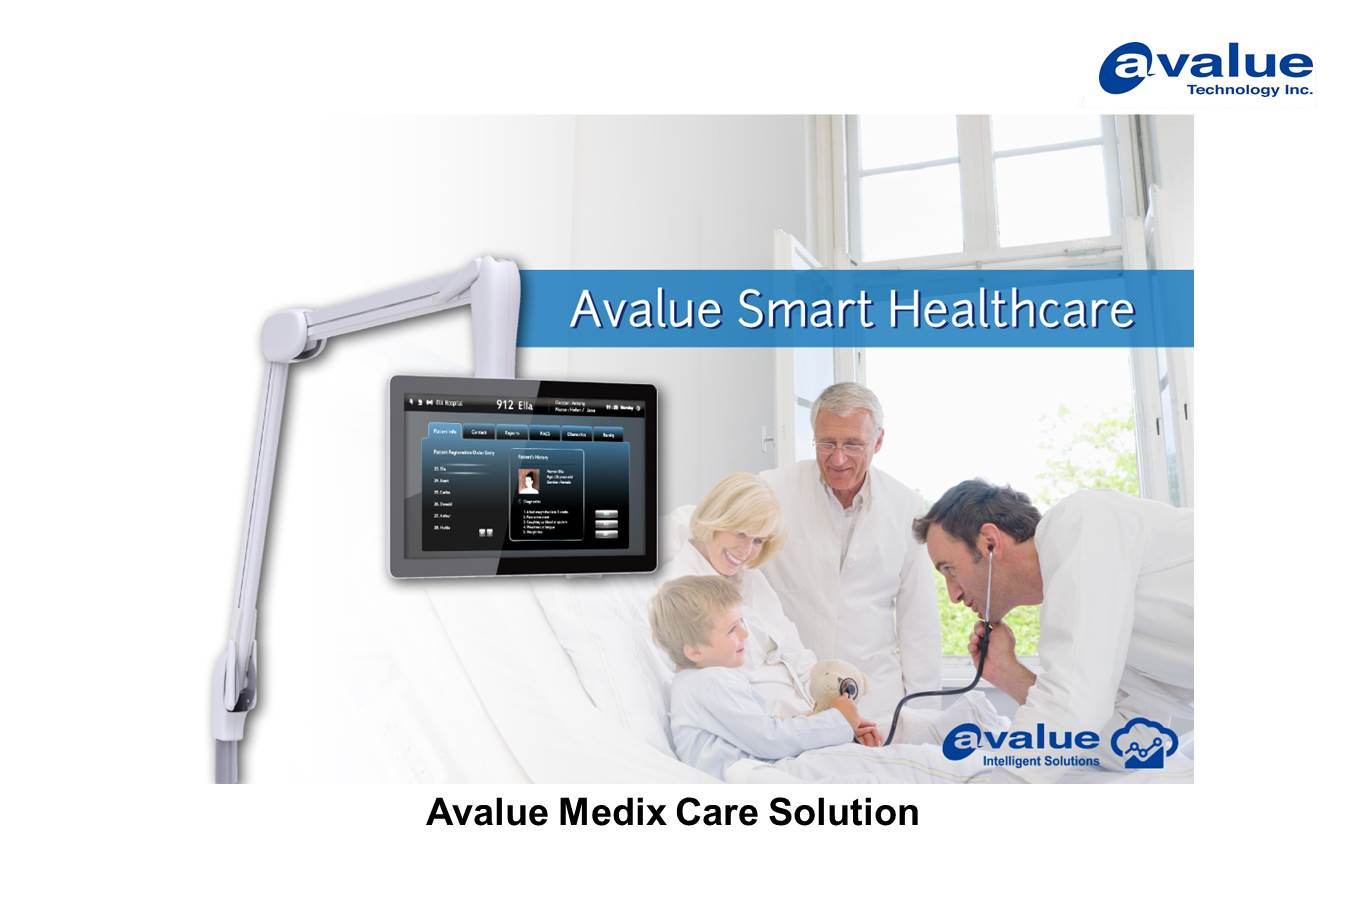 Avalue Medix Care Solution